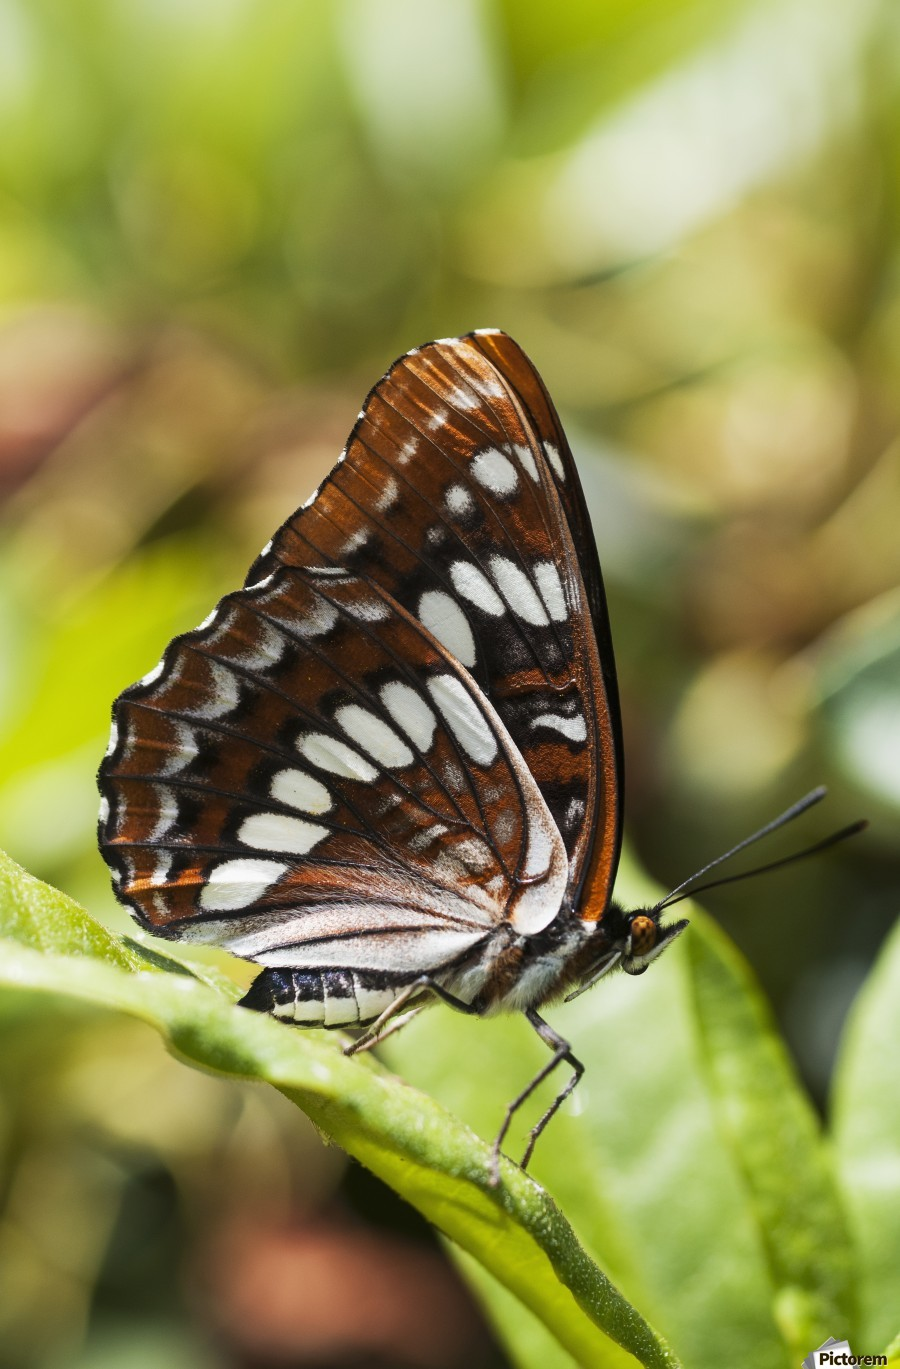 A White Admiral Butterfly (Limenitis arthemis) rests on a leaf; Astoria, Oregon, United States of America  Print